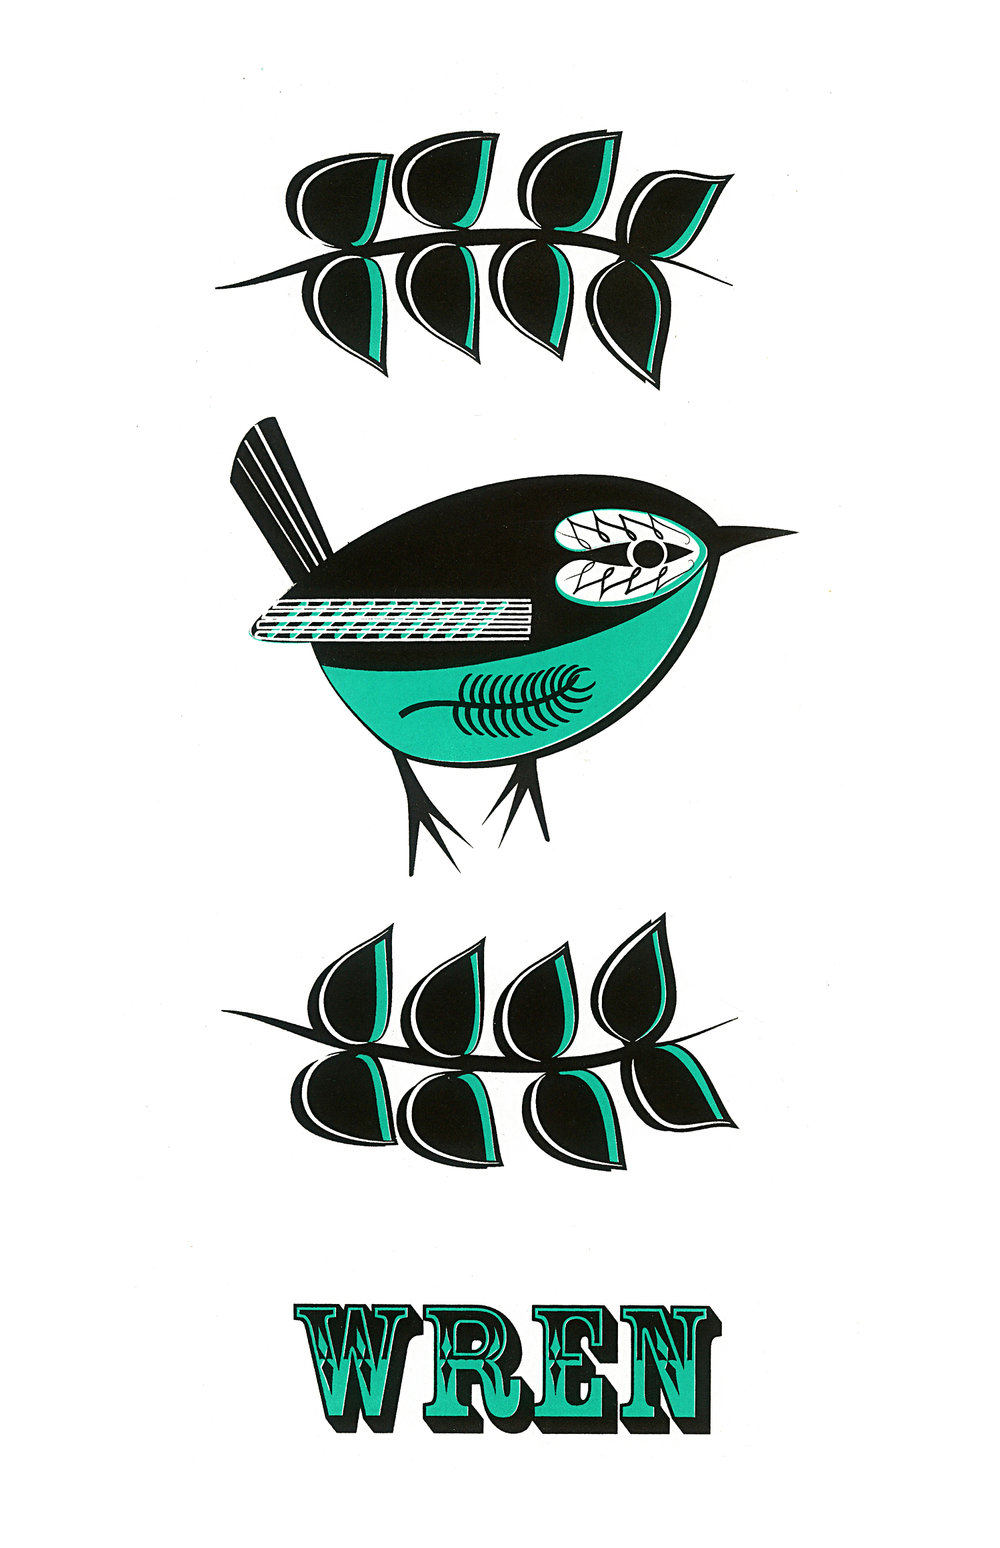 Limited Edition Green Wren Screenprint